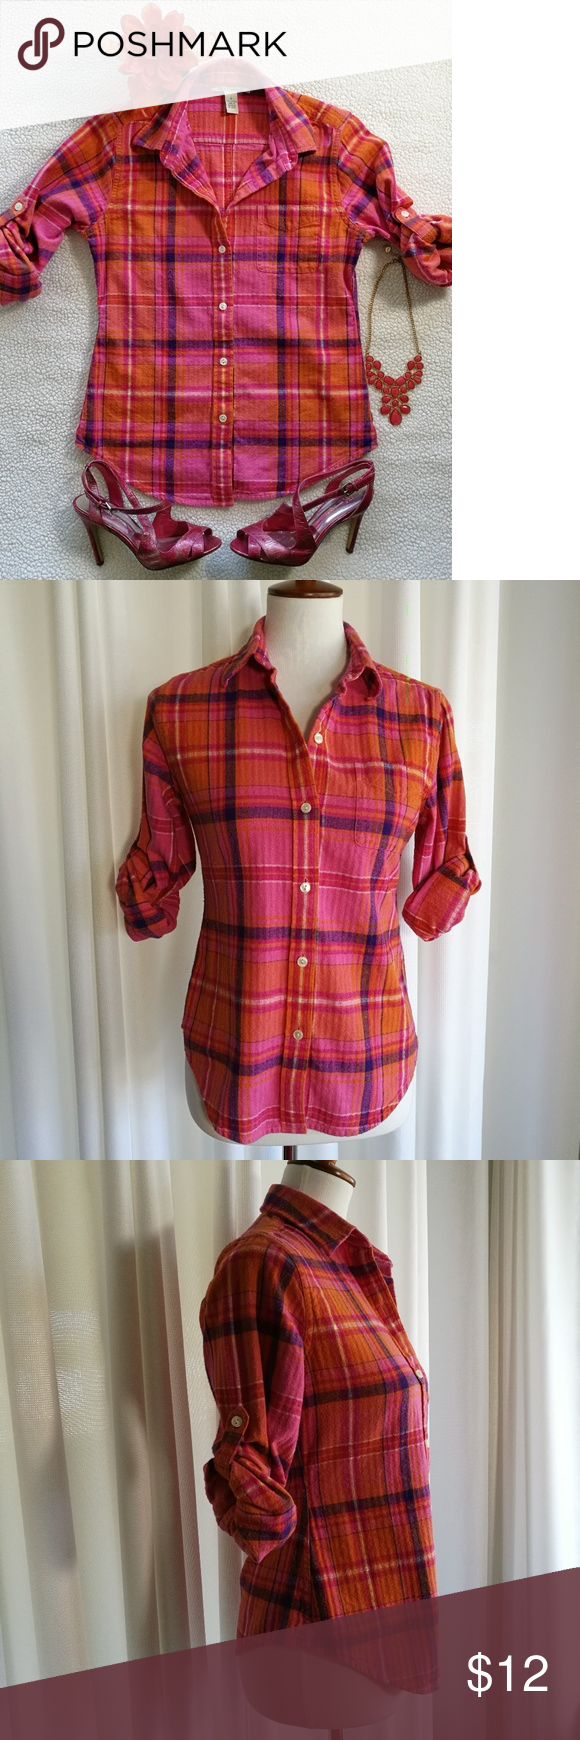 Orange flannel jacket  Lucky Brand Cotton Flannel Shirt Size Small  Flannel shirts Lucky